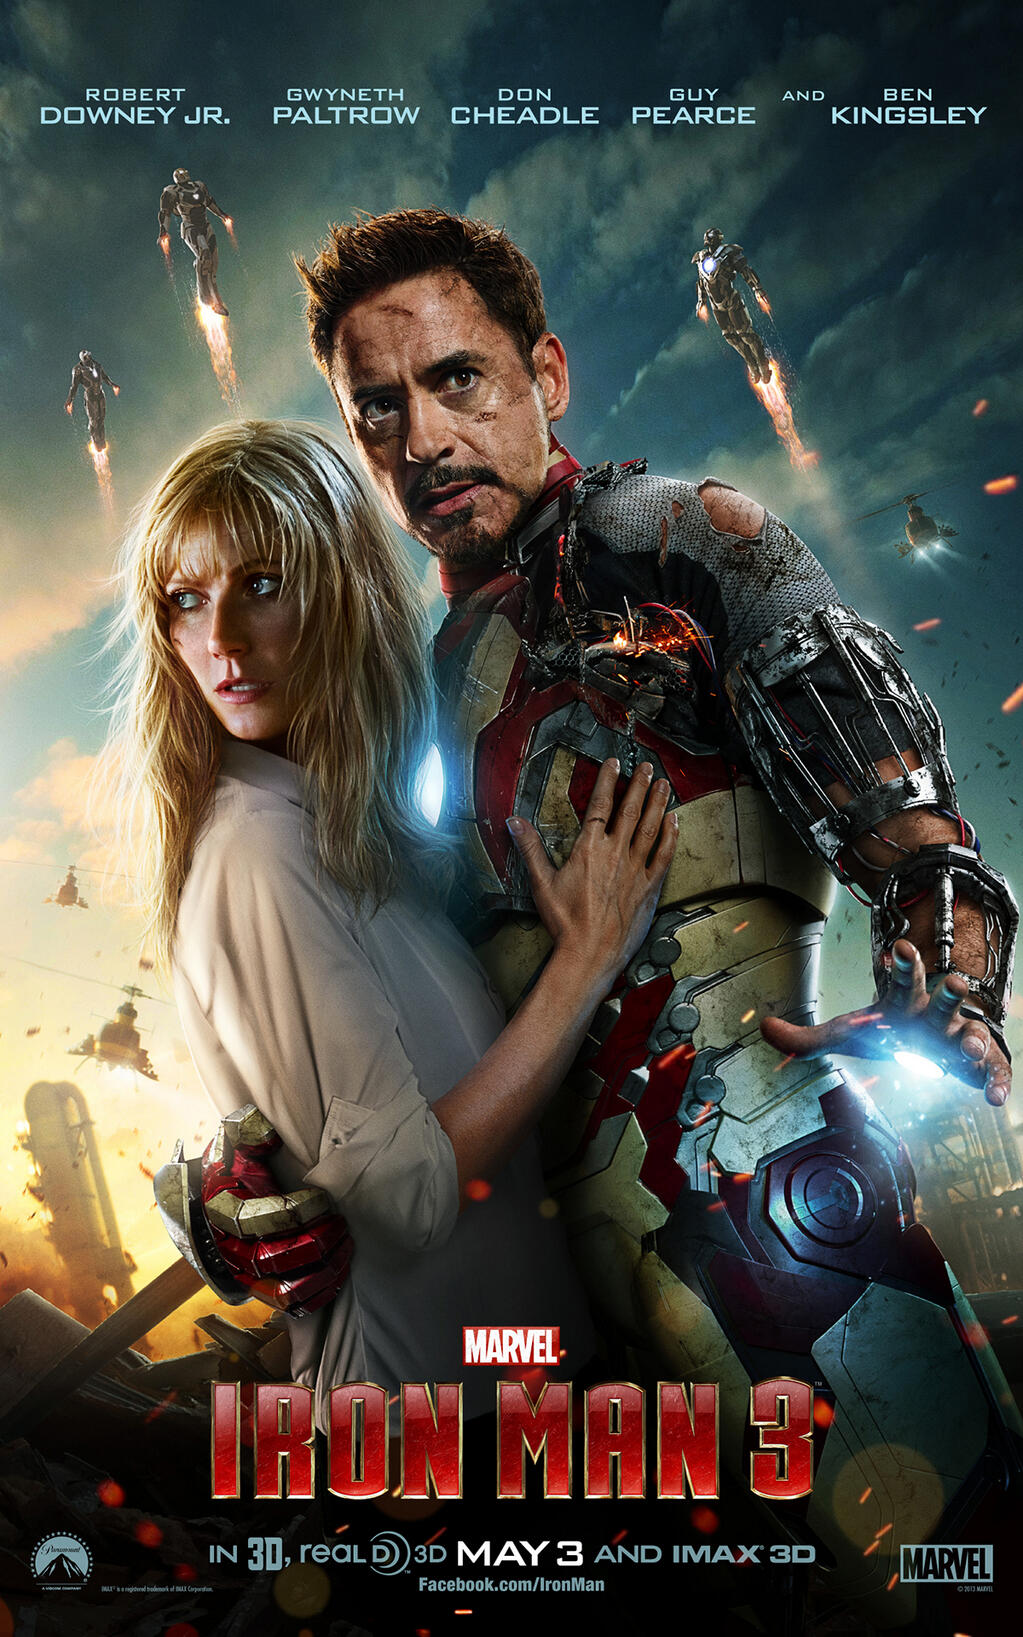 IRON MAN 3 One Sheet featuring Tony Stark and Pepper Potts